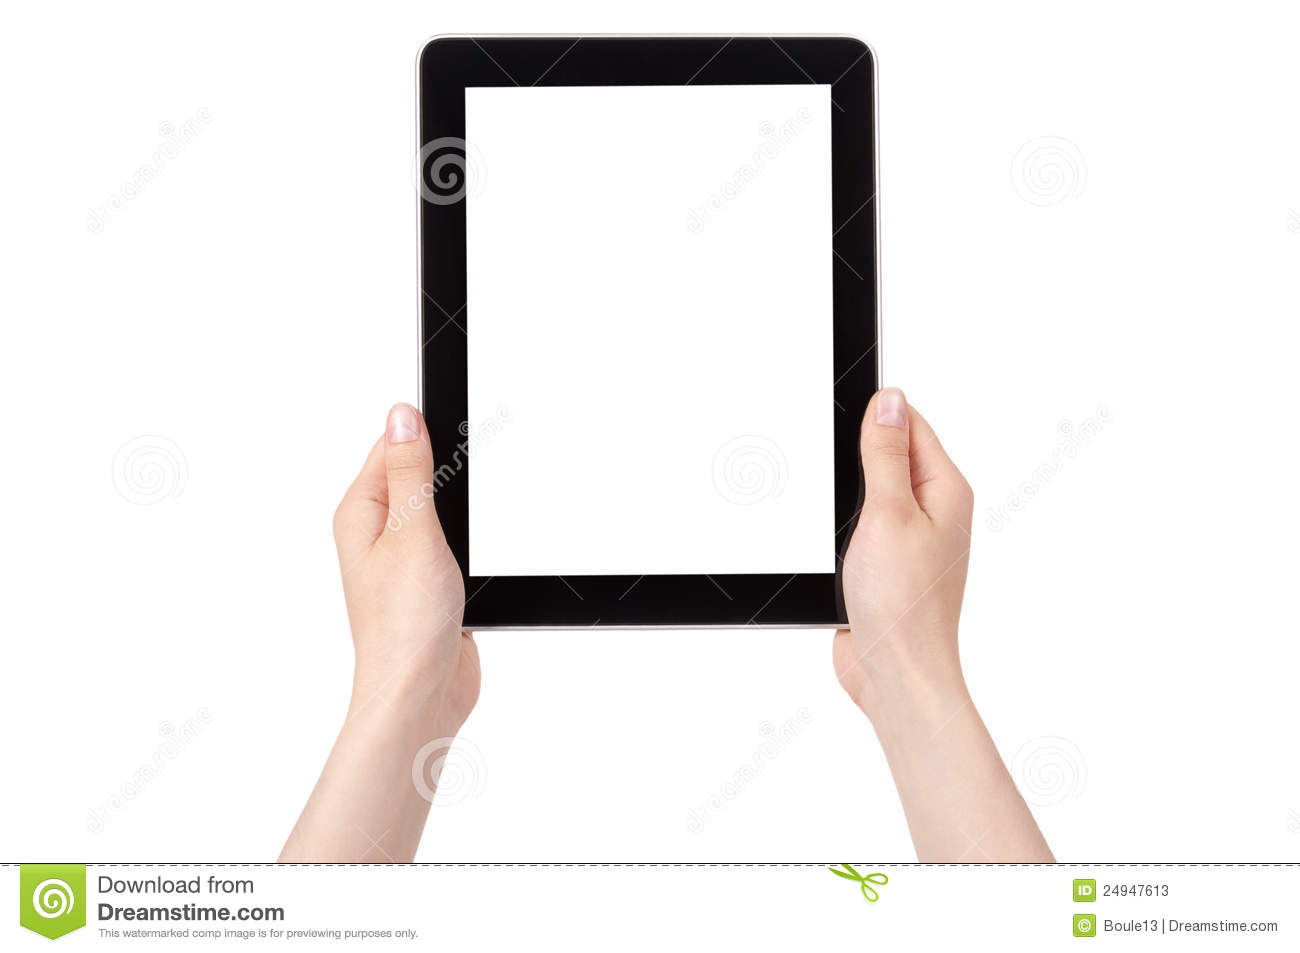 Hands of a woman holding digital tablet displaying a white screen.